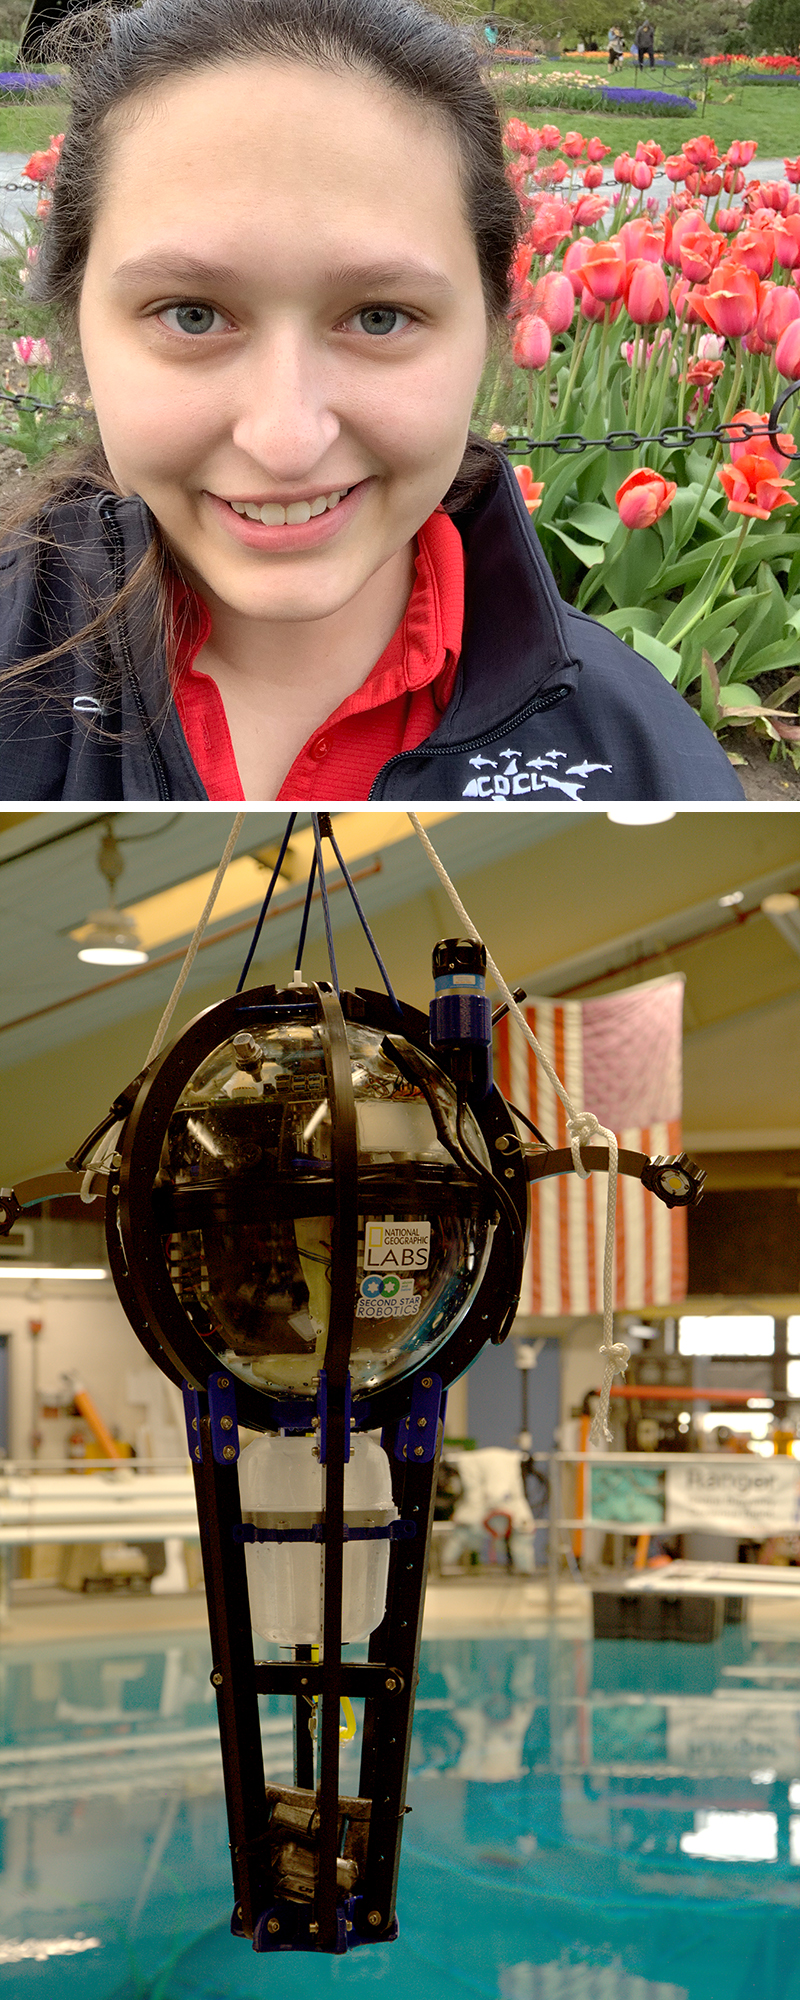 Top: Rachel Suitor. Image courtesy Rachel Suitor. Bottom: Driftcam prototype being tested in the Neutral Buoyancy Research Facility. Driftcam developed by National Geographic Society configured with high-resolution low-light cameras to capture detailed imagery of Scattering Layer constituent species. Image courtesy of Kyler Abernathy, National Geographic Society.